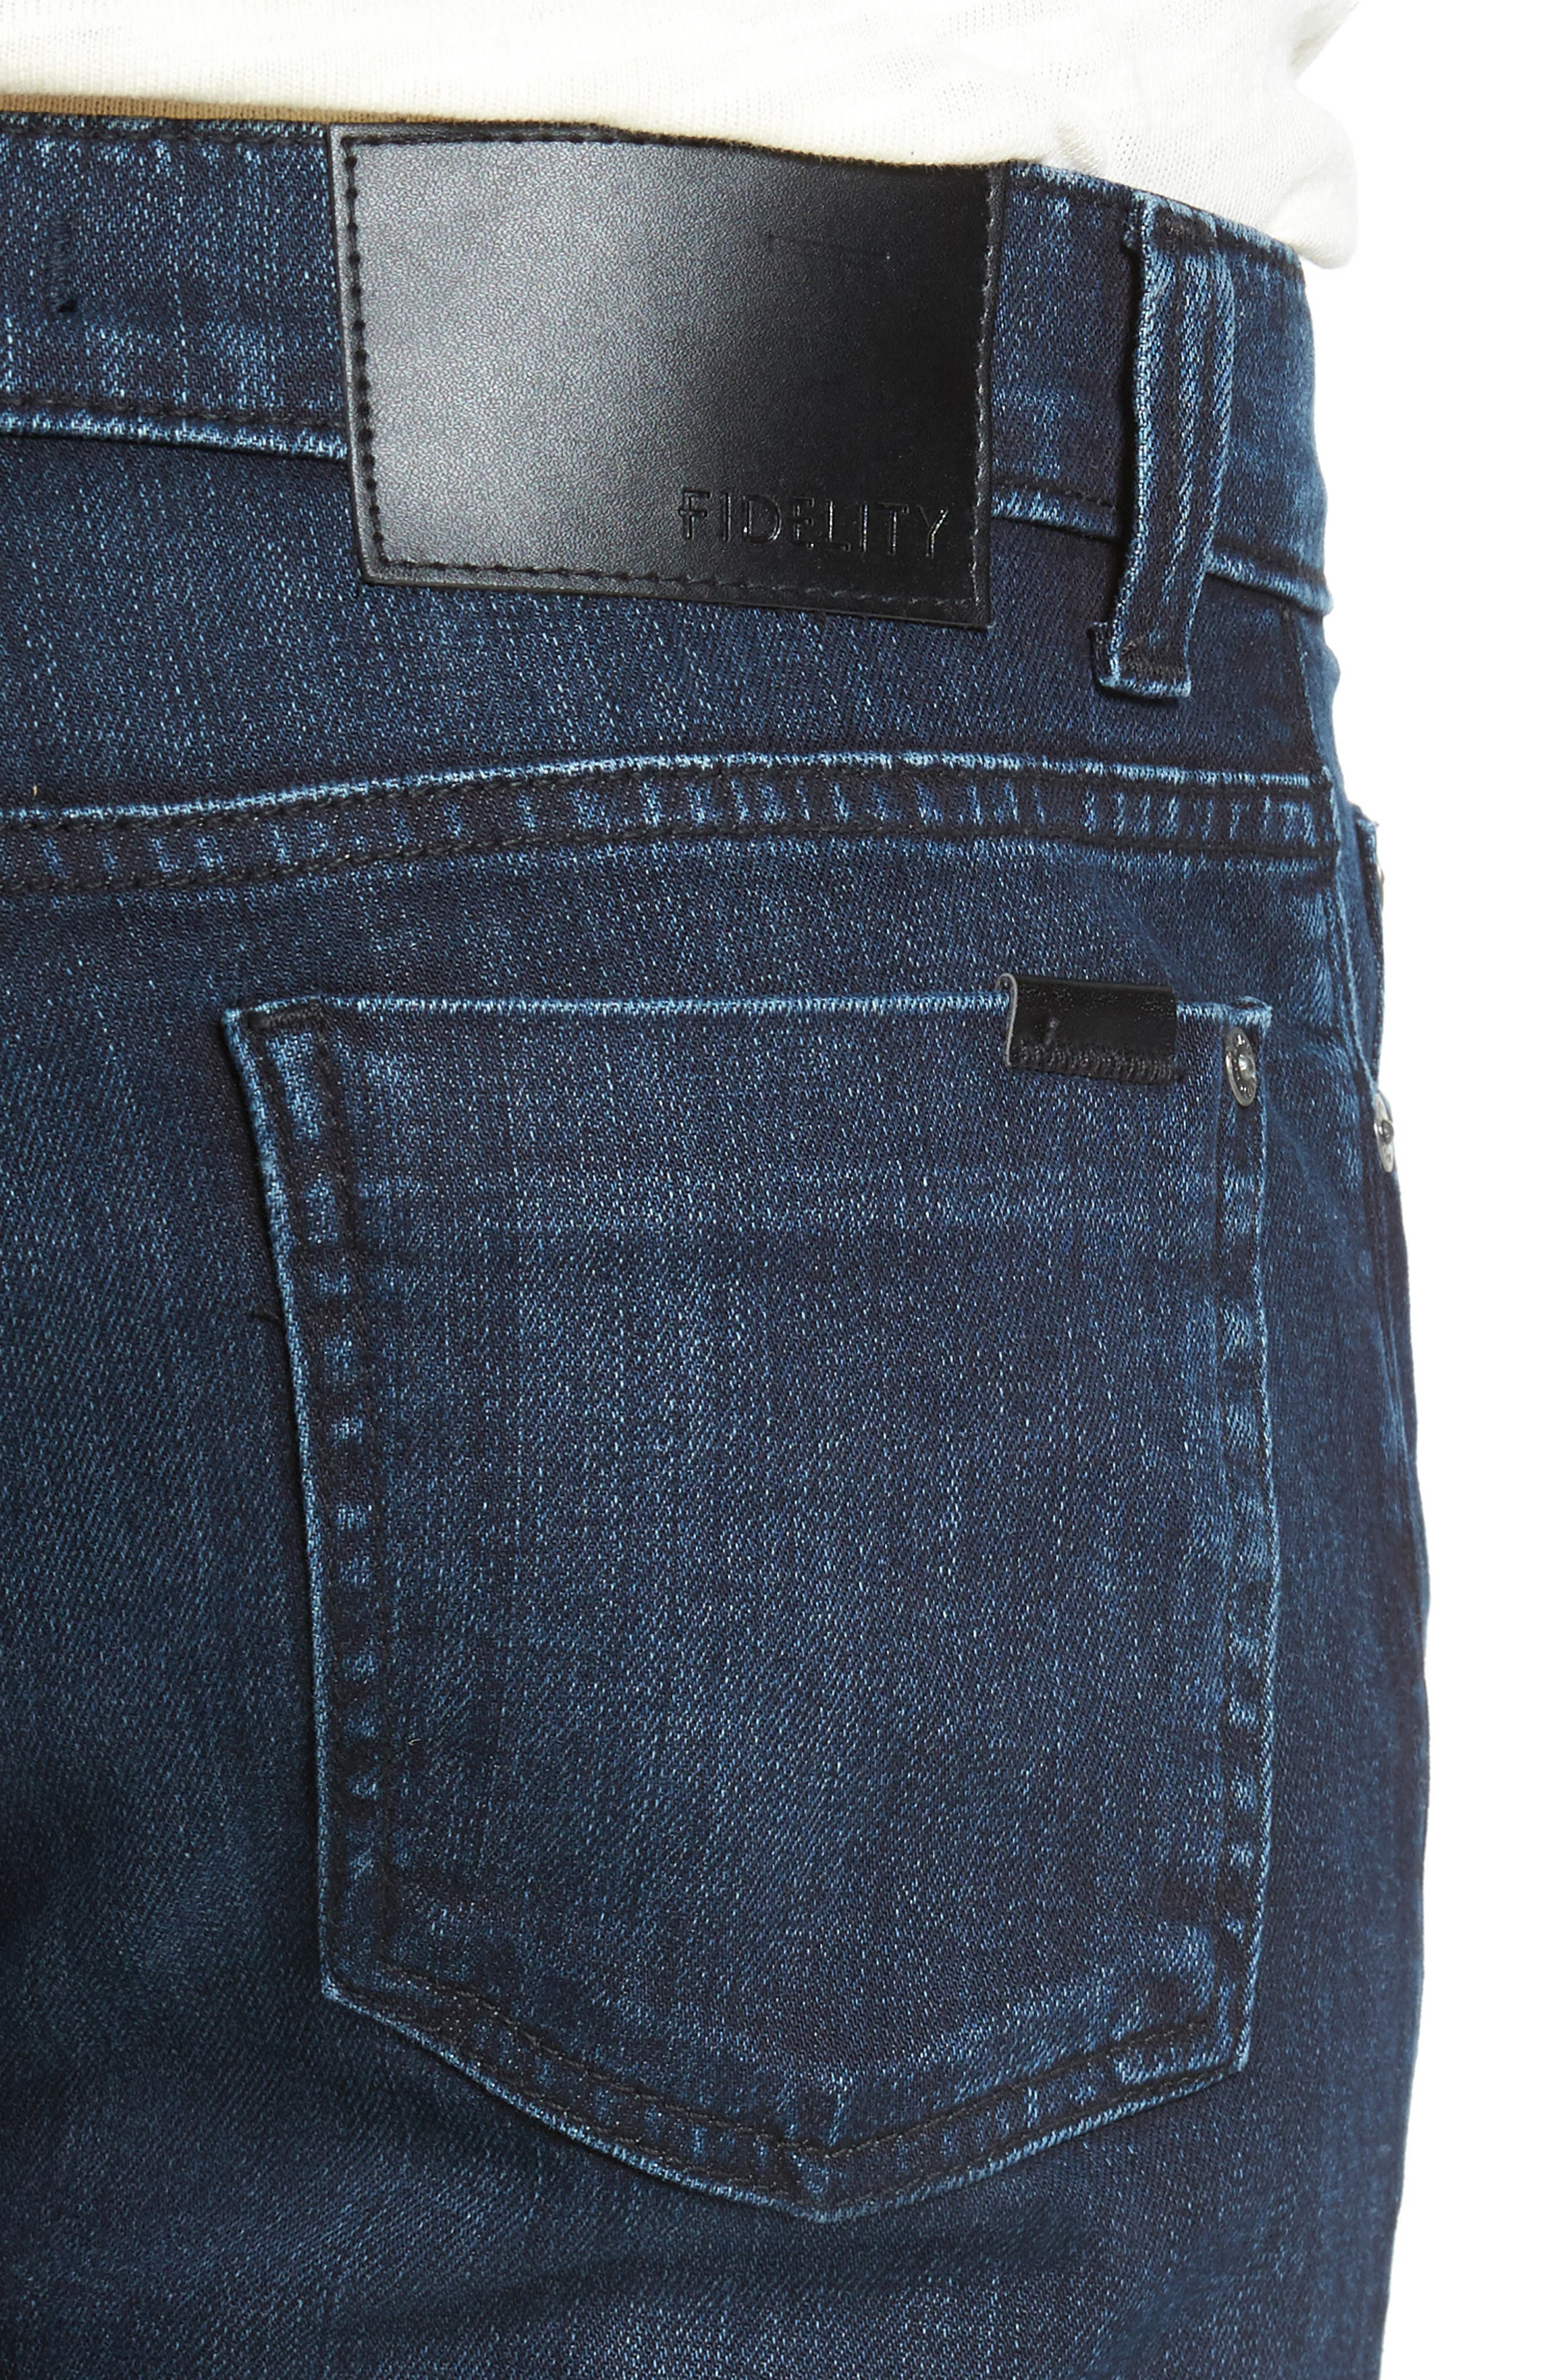 5011 Relaxed Fit Jeans,                             Alternate thumbnail 4, color,                             Black On Blue